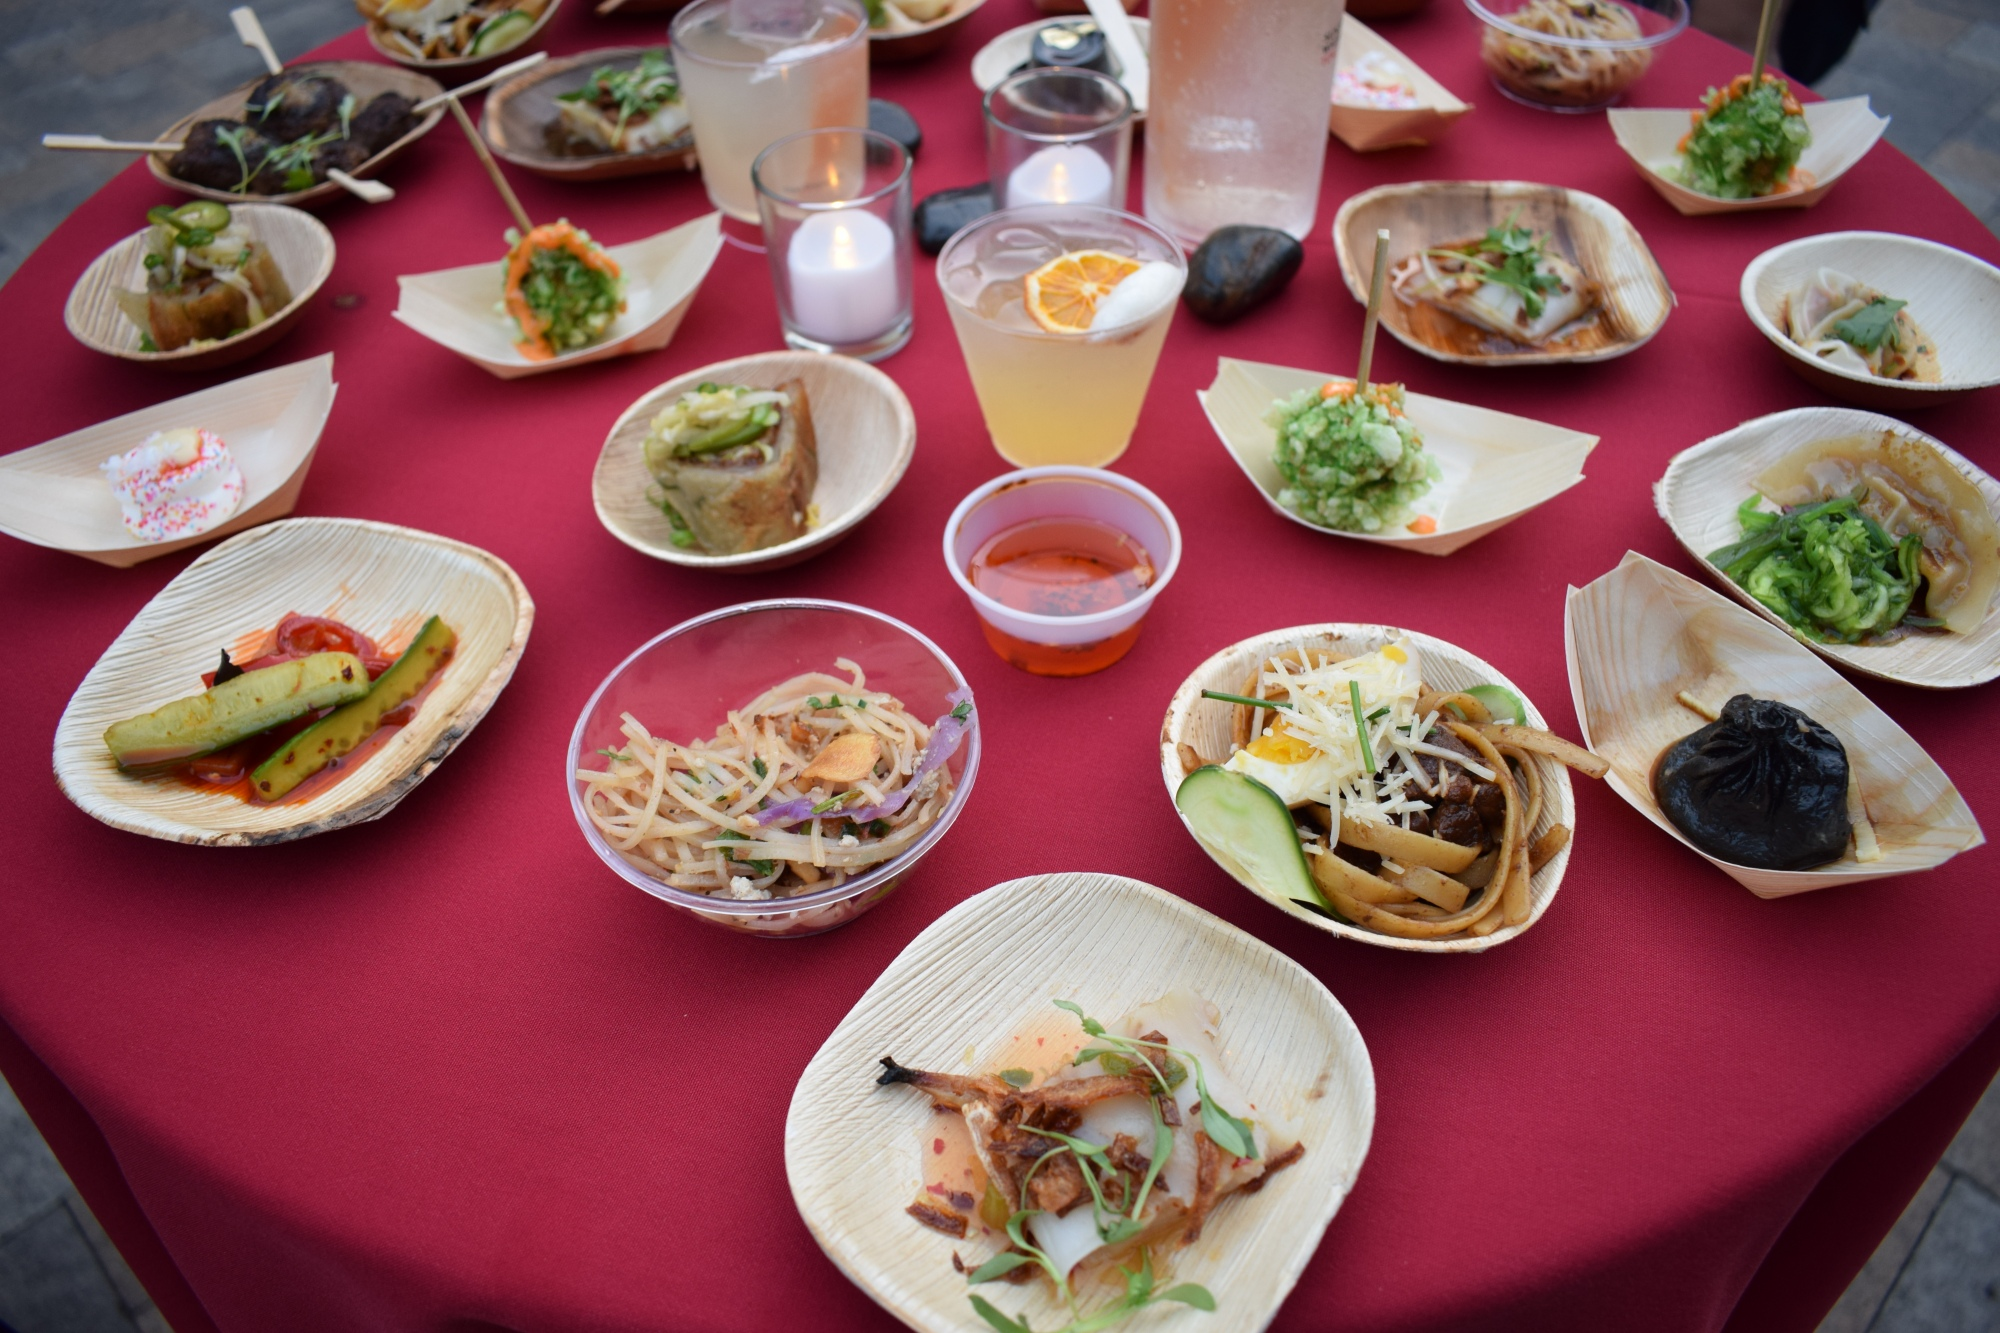 A guide to the 2017 annual la lucky rice feast oc food for Cuisine good food guide 2017